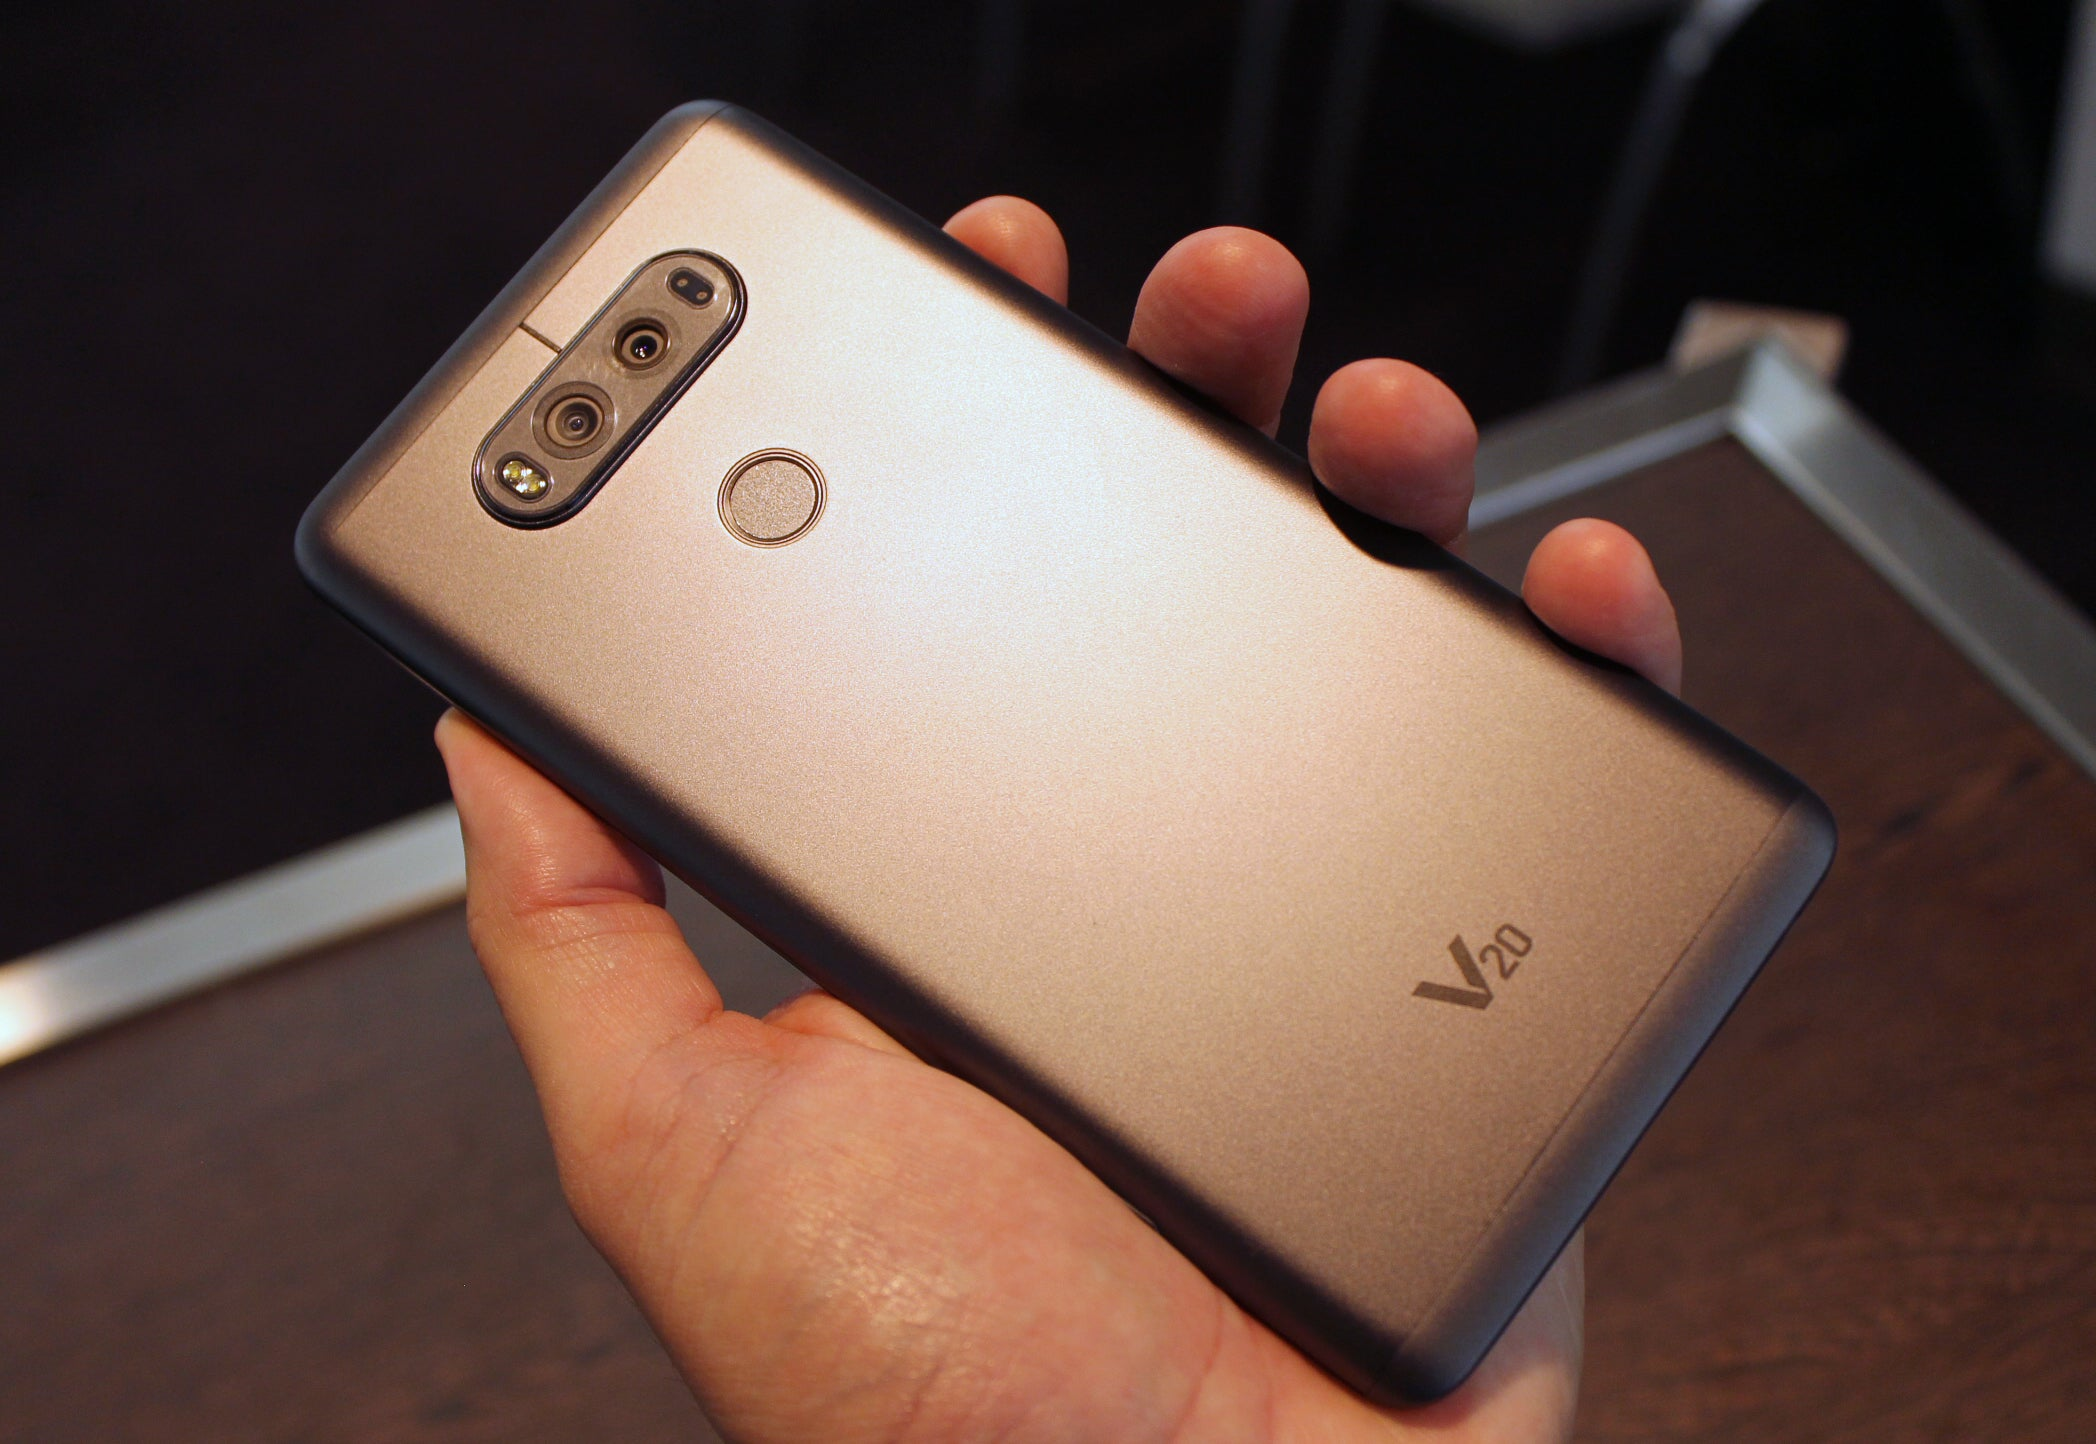 hot sales b1368 26f64 LG V20 hands on: A 5.7-inch phablet for smartphone content creators ...